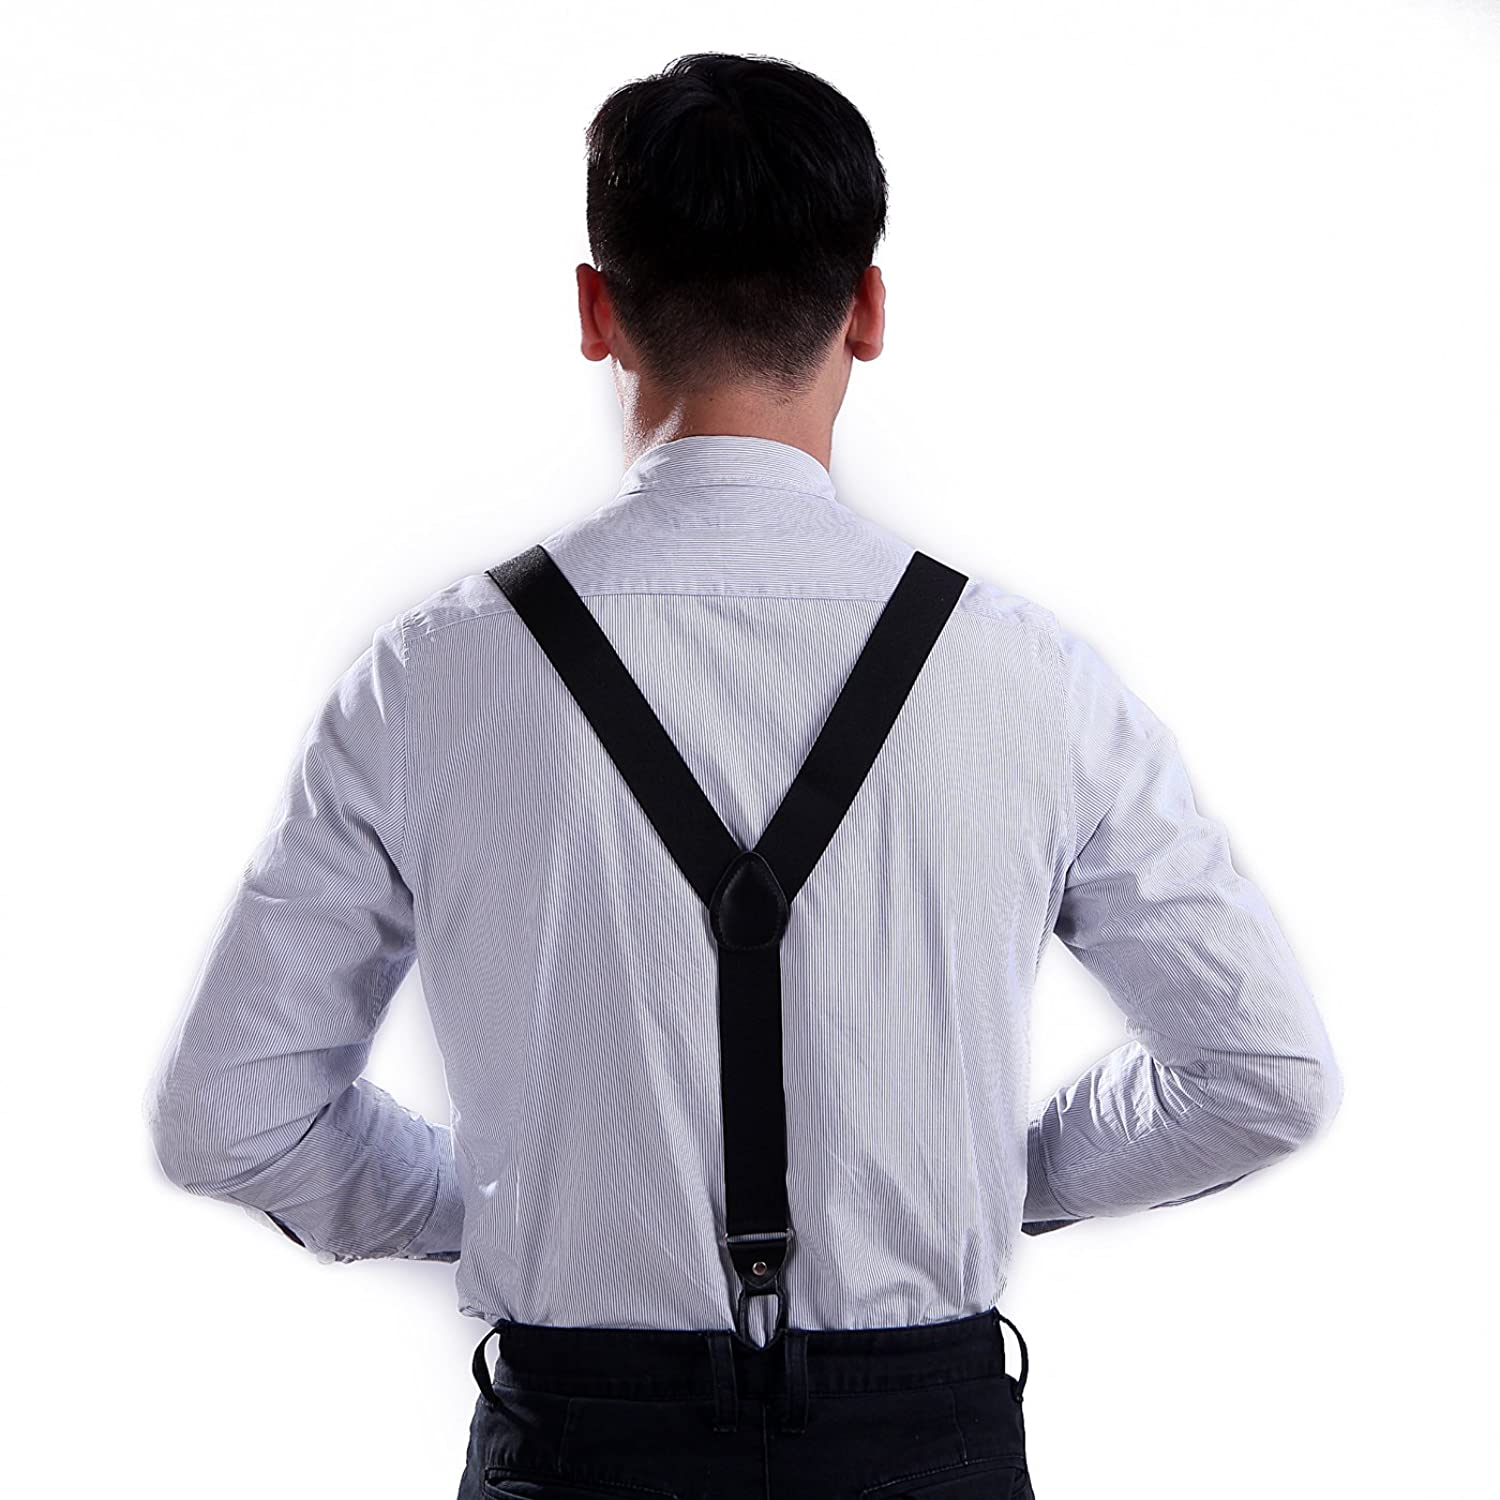 Men's Vintage Style Suspenders HDE Men's Formal Fashion Button End Adjustable Dress Suspenders - 1 1/4 Inch Wide $9.55 AT vintagedancer.com